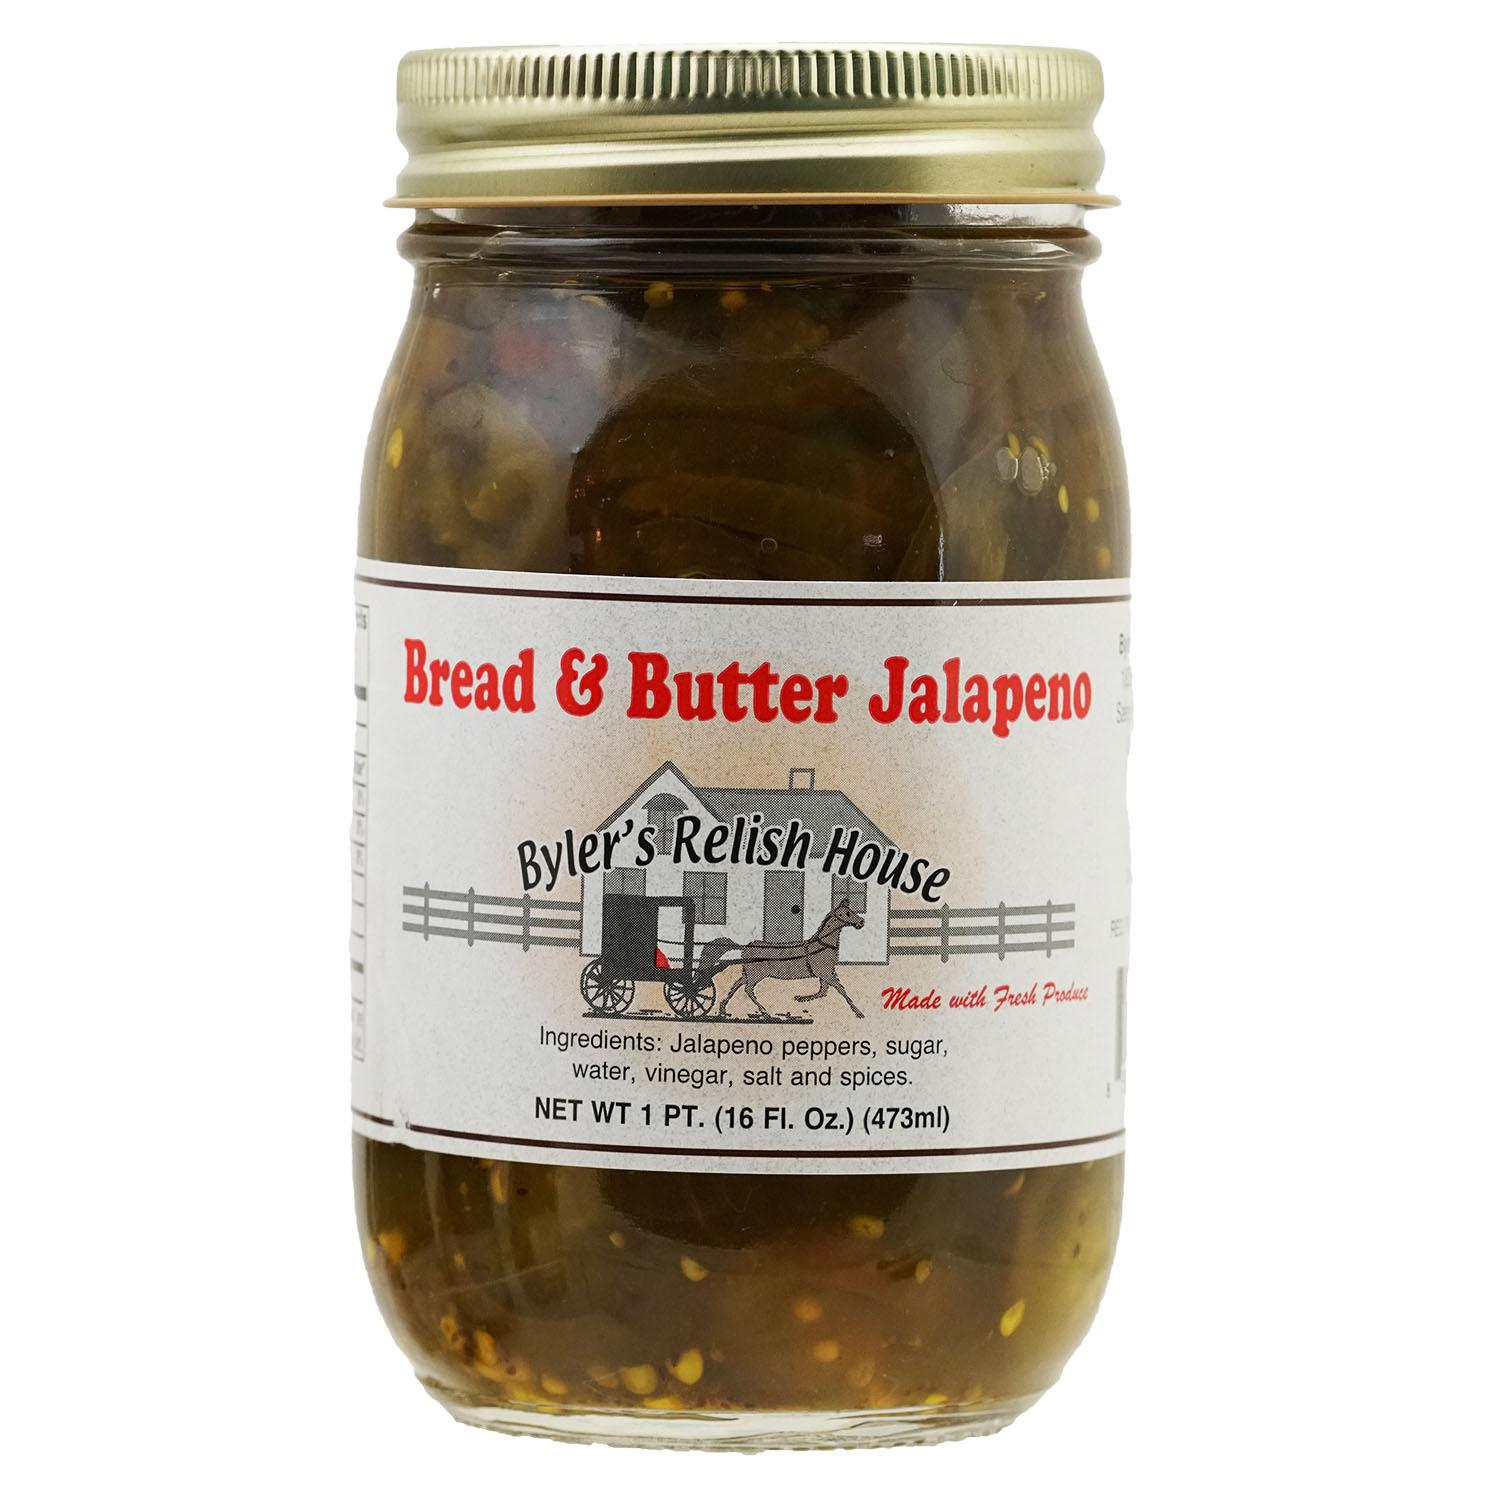 Byler's Relish House Homemade Amish Country Bread and Butter Jalapeno 16 oz. by Byler's Relish House